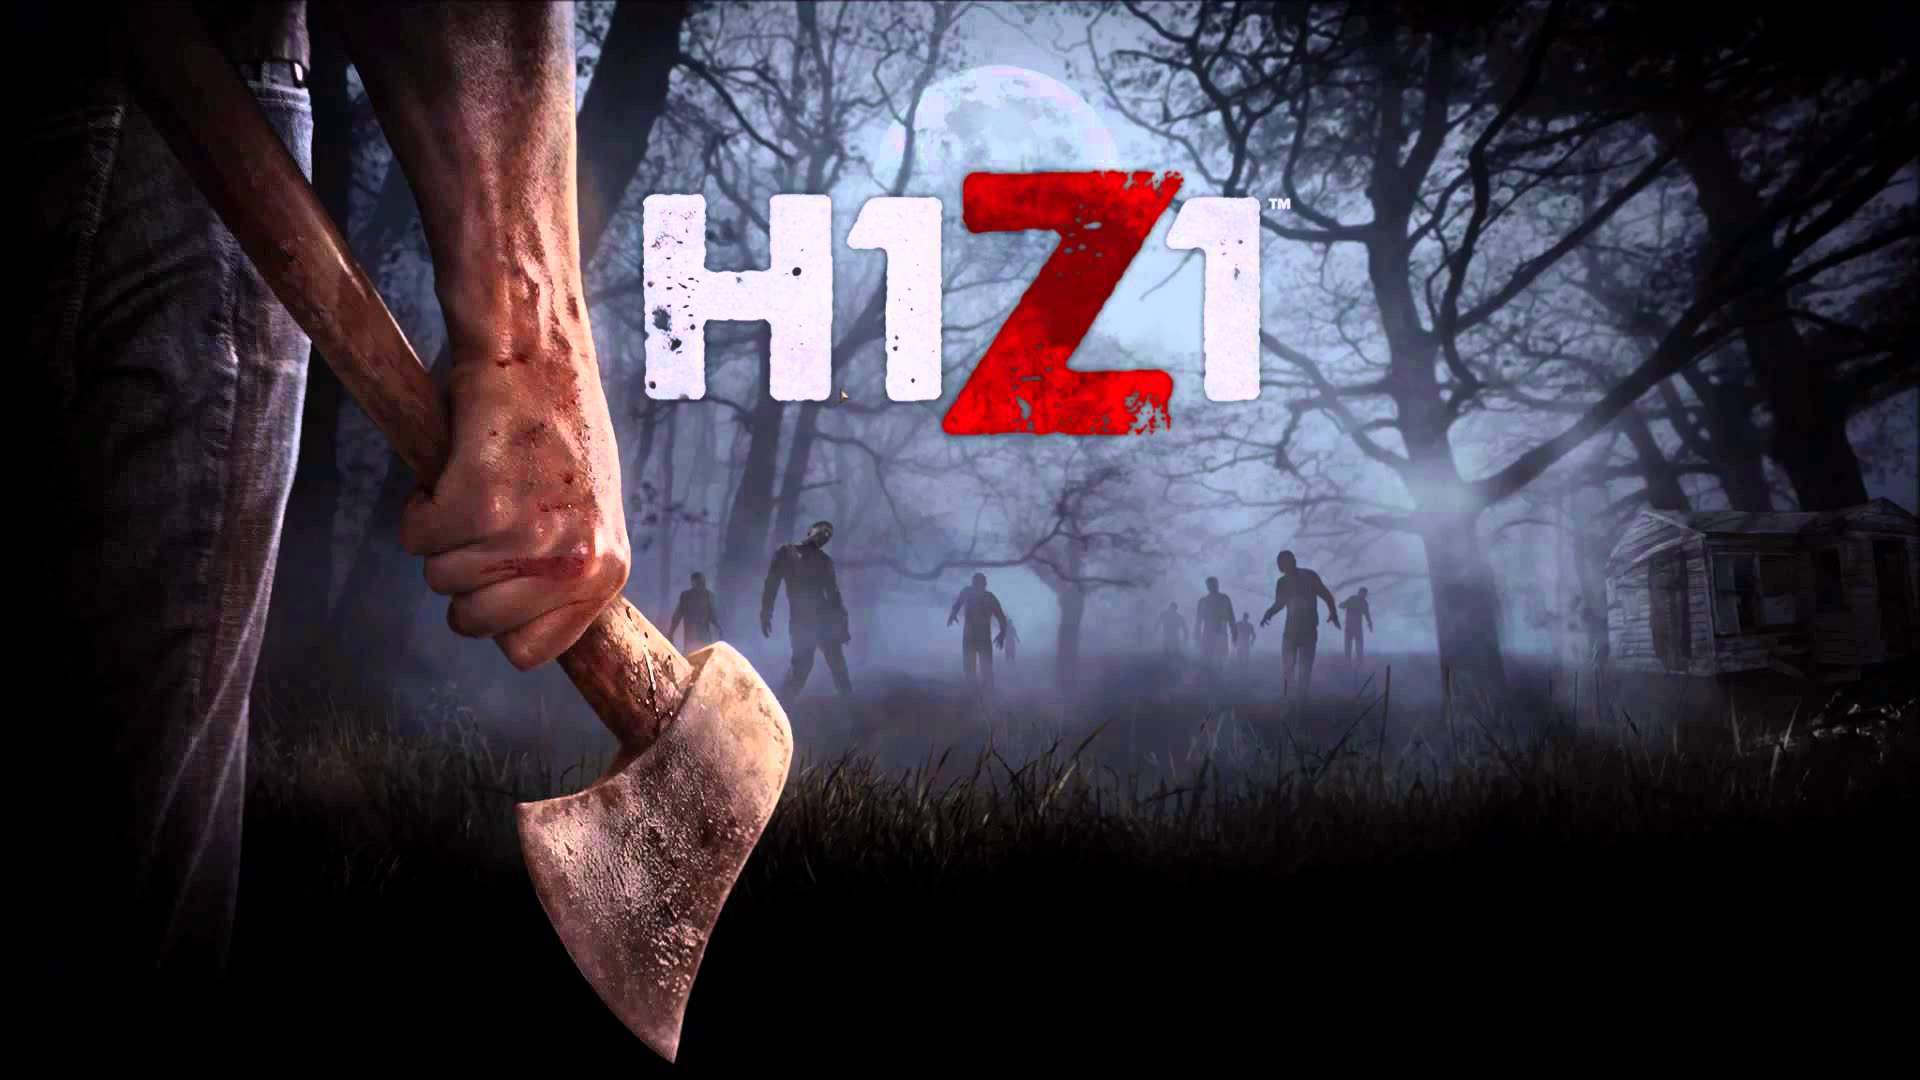 The free-to-play battle royale H1Z1 also coming to the 4